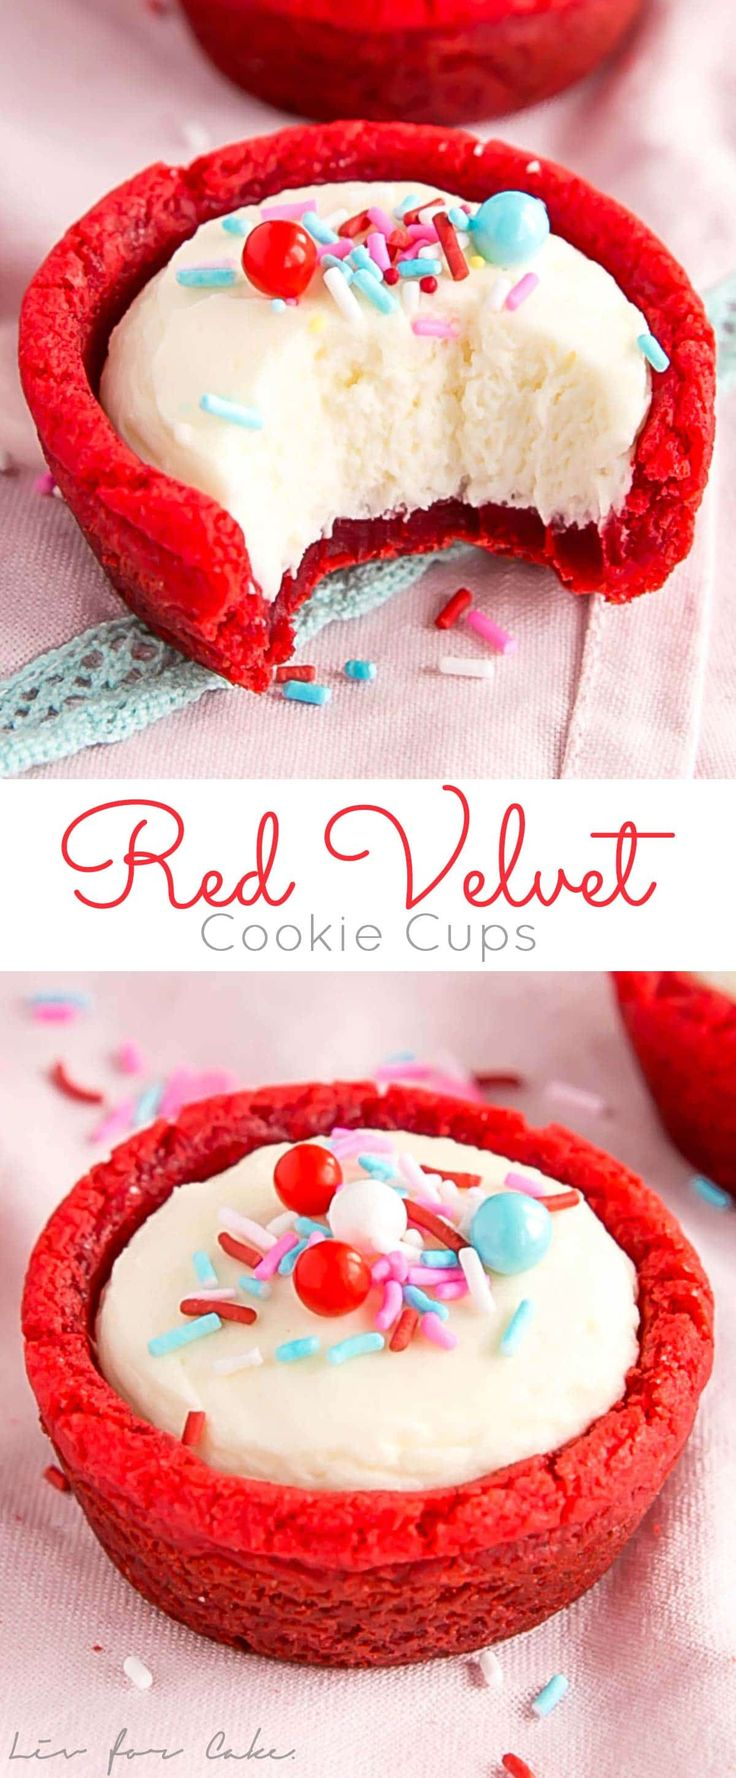 These Red Velvet Cookie Cups are a fun and easy treat to make for the one you love! Cinnamon spiced cookies with a fluffy cheesecake filling.   livforcake.com